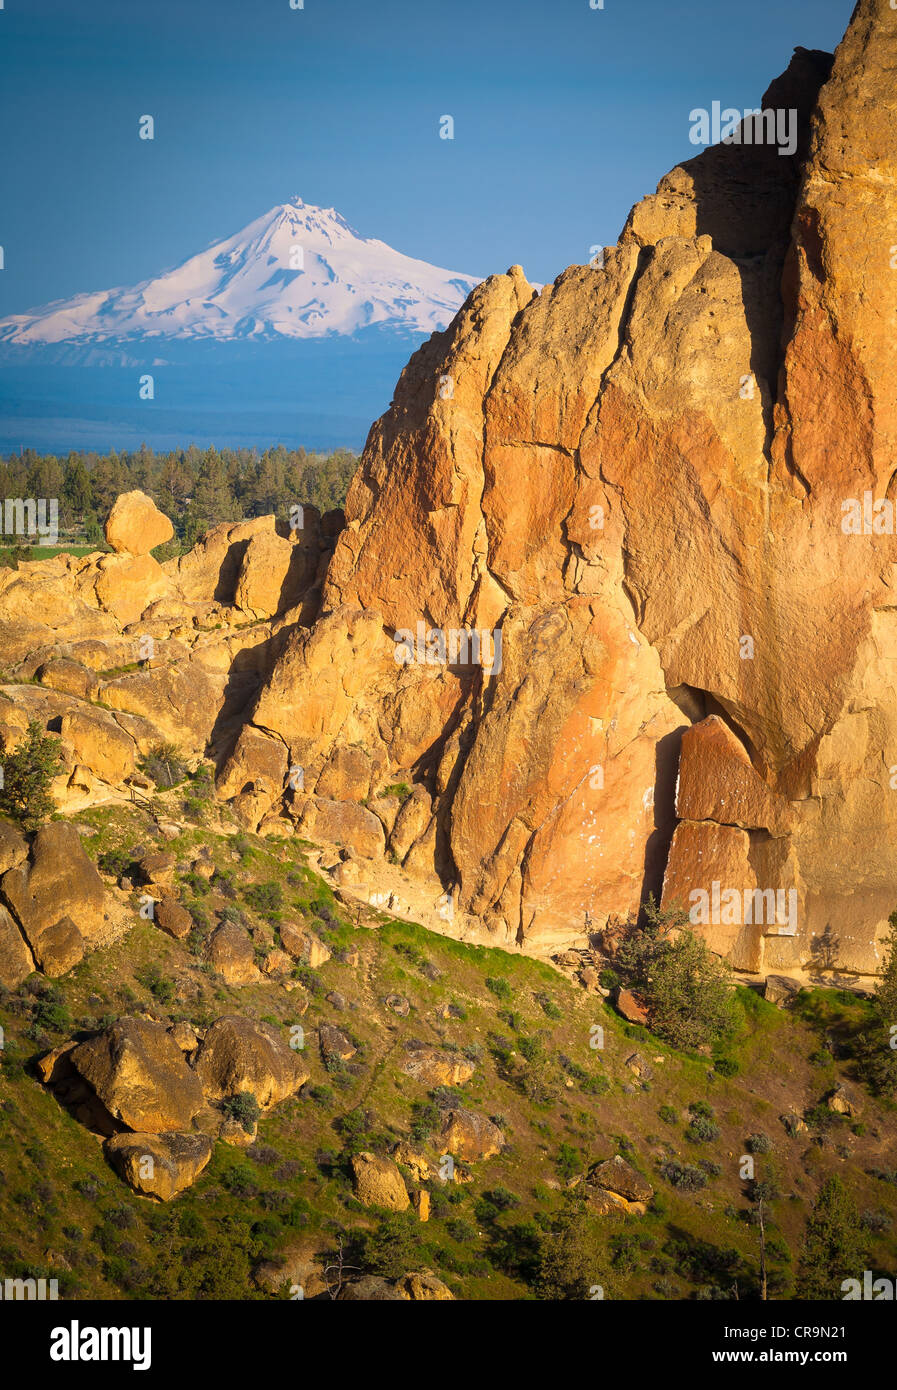 Mount Hood as seen from Smith Rock State Park in Oregon - Stock Image